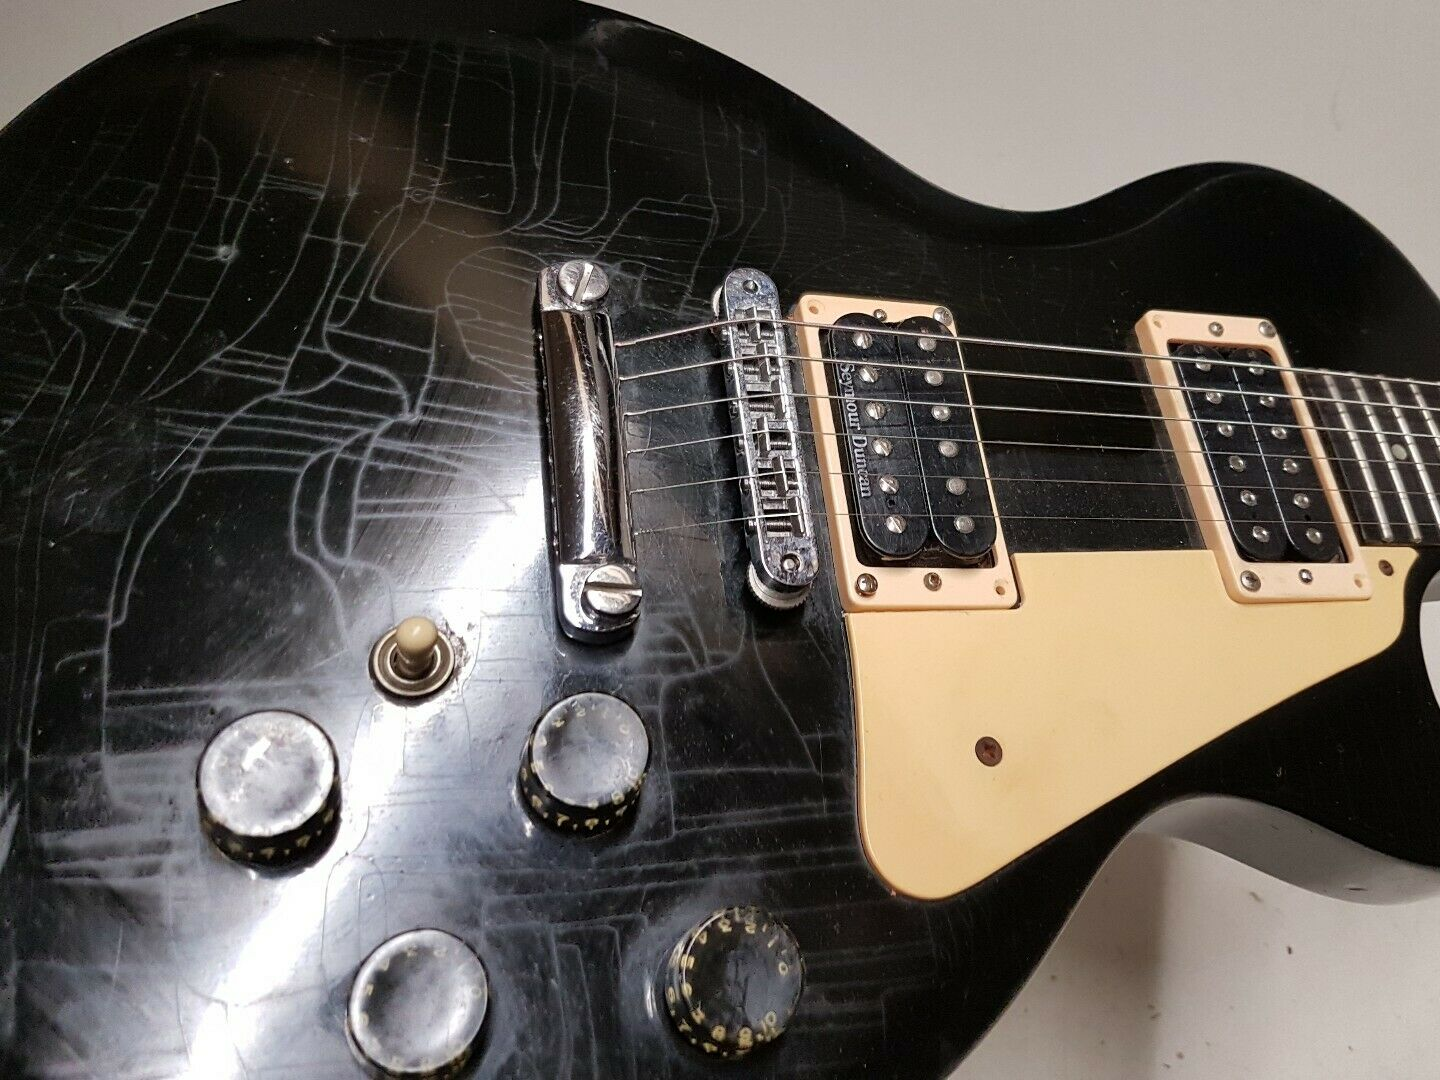 1983 GIBSON LES PAUL - MADE in USA - EBONY FINGERBOARD